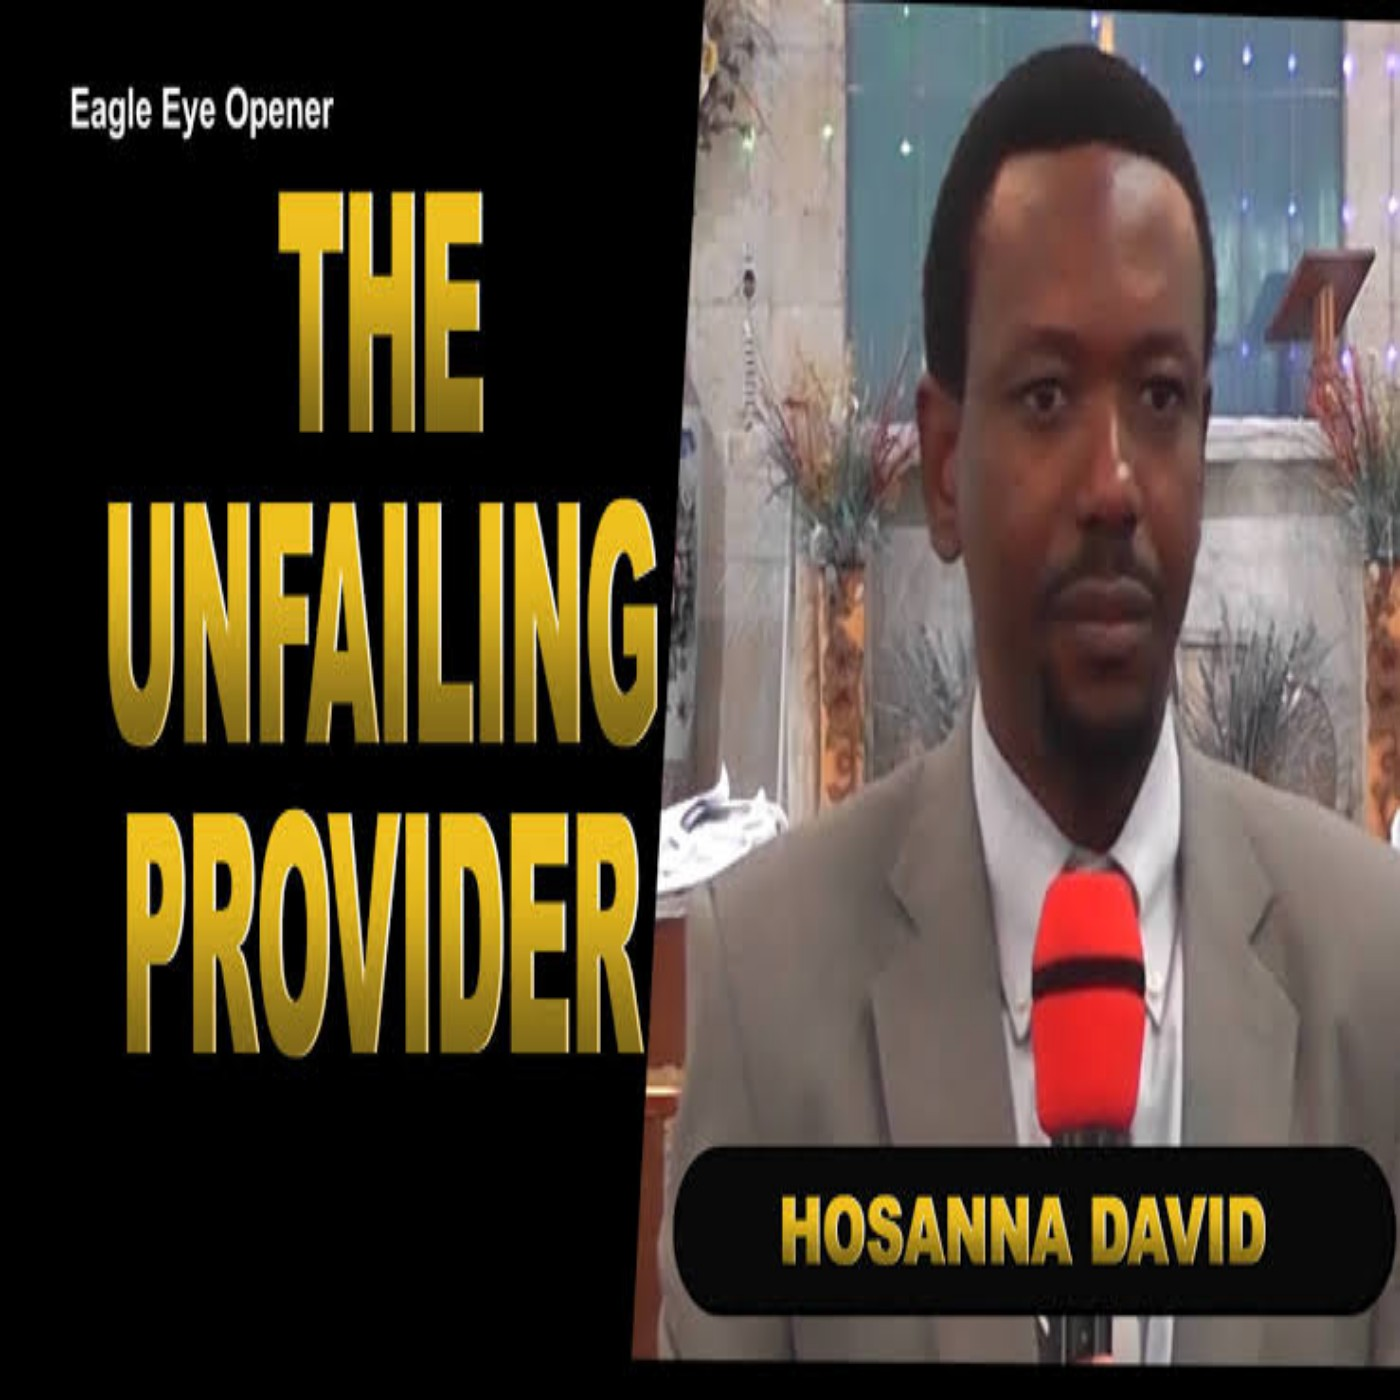 The Unfailing Provider Image